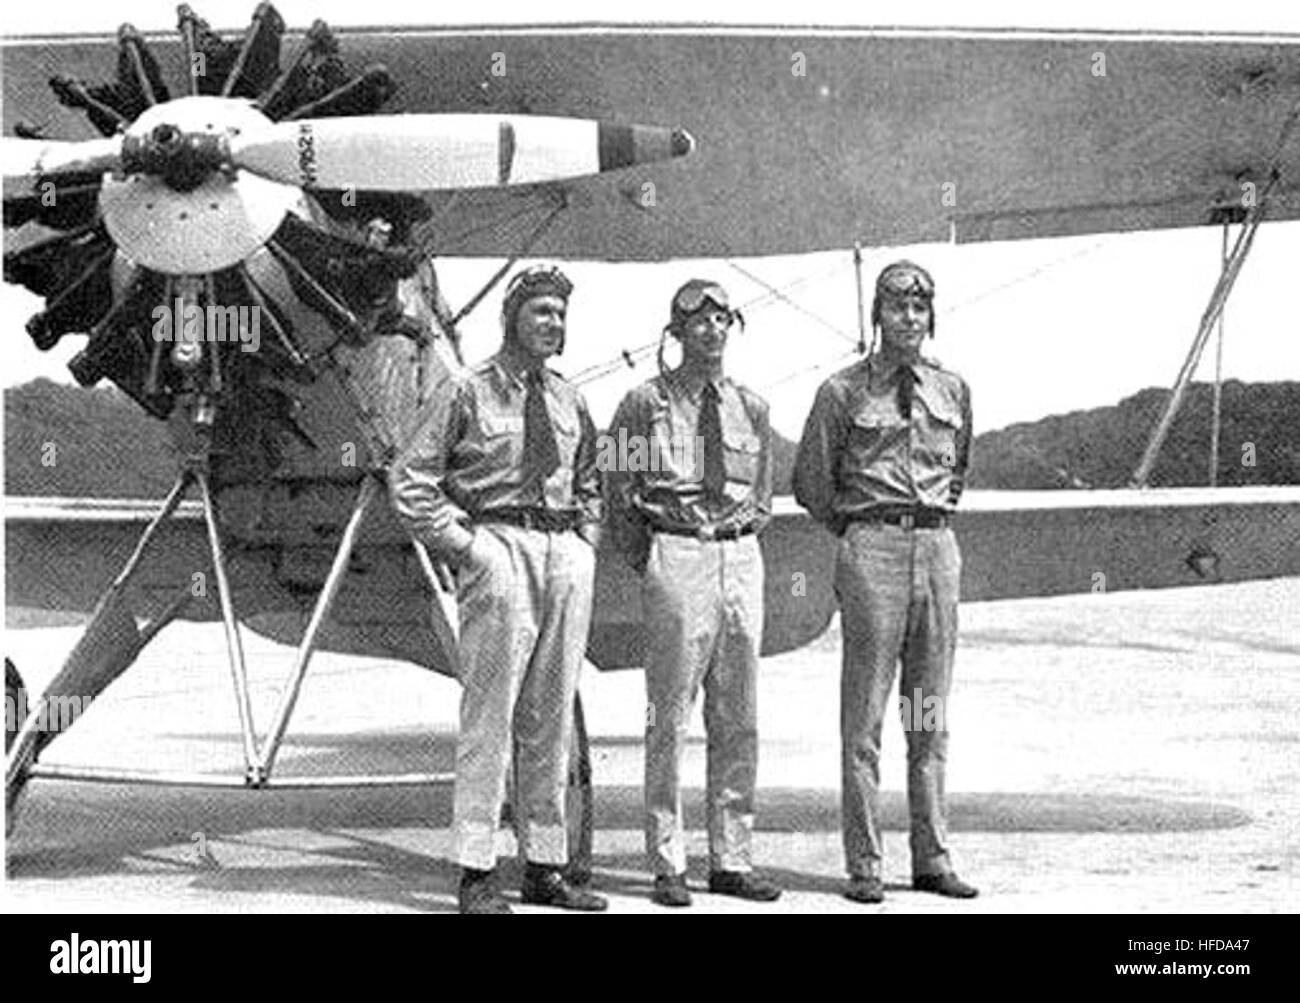 Three Flying Fish aerobatic team of 1933 and one of their Curtiss F6C Hawks - Stock Image